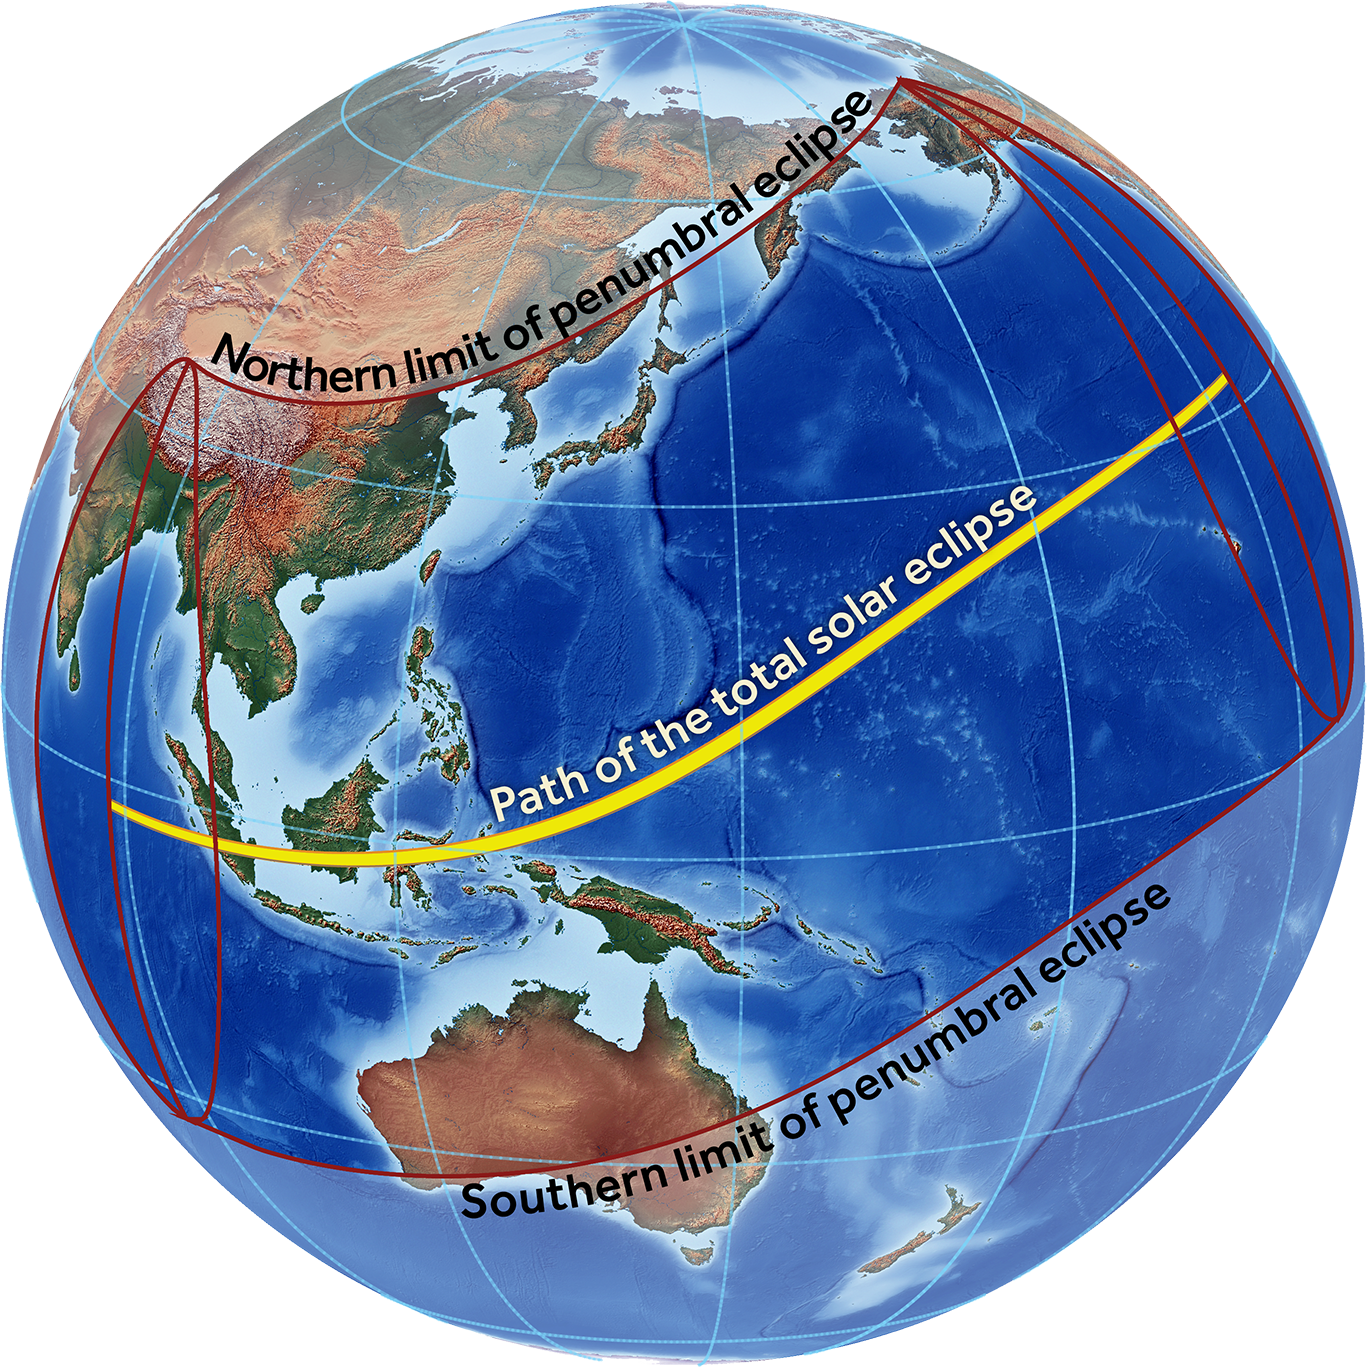 Hemispheric view of the eclipse